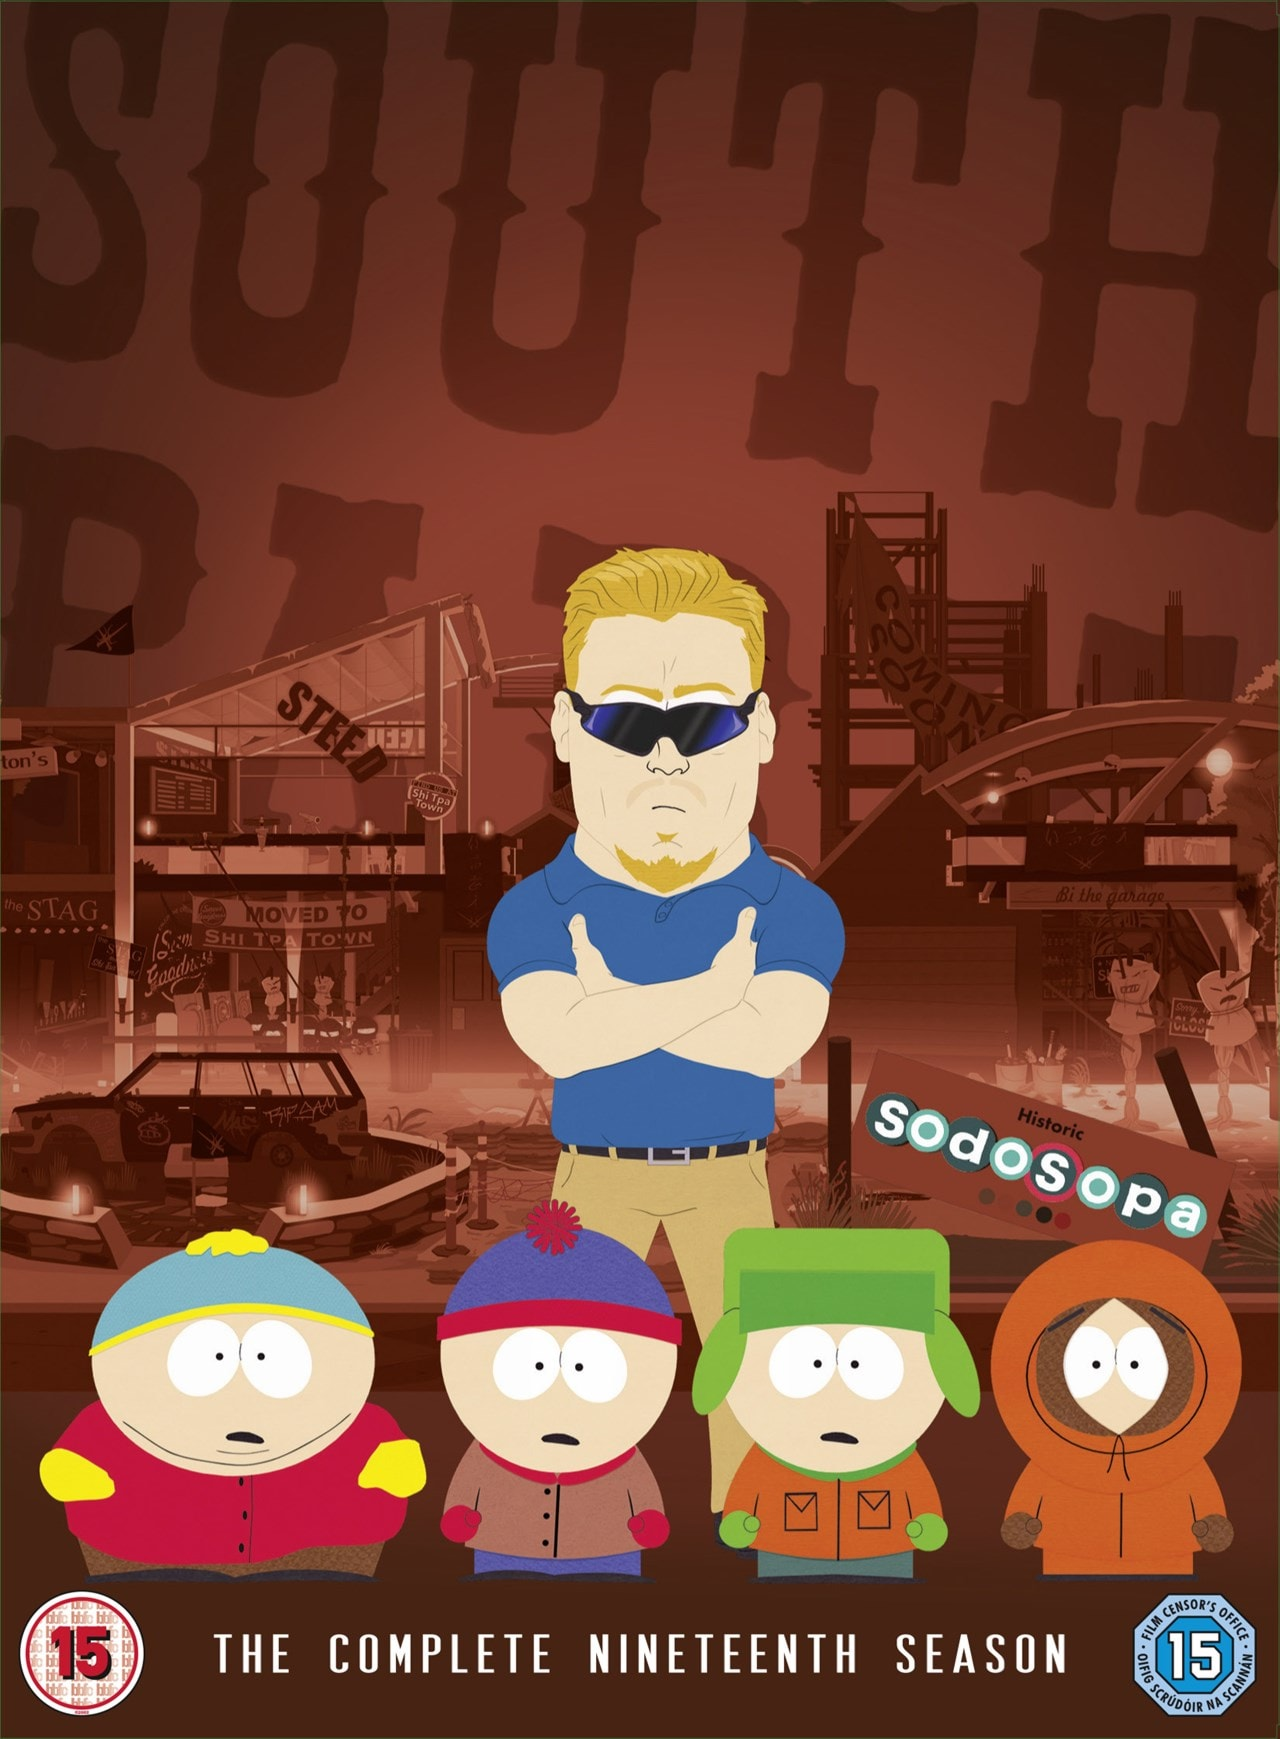 South Park: The Complete Nineteenth Season - 1